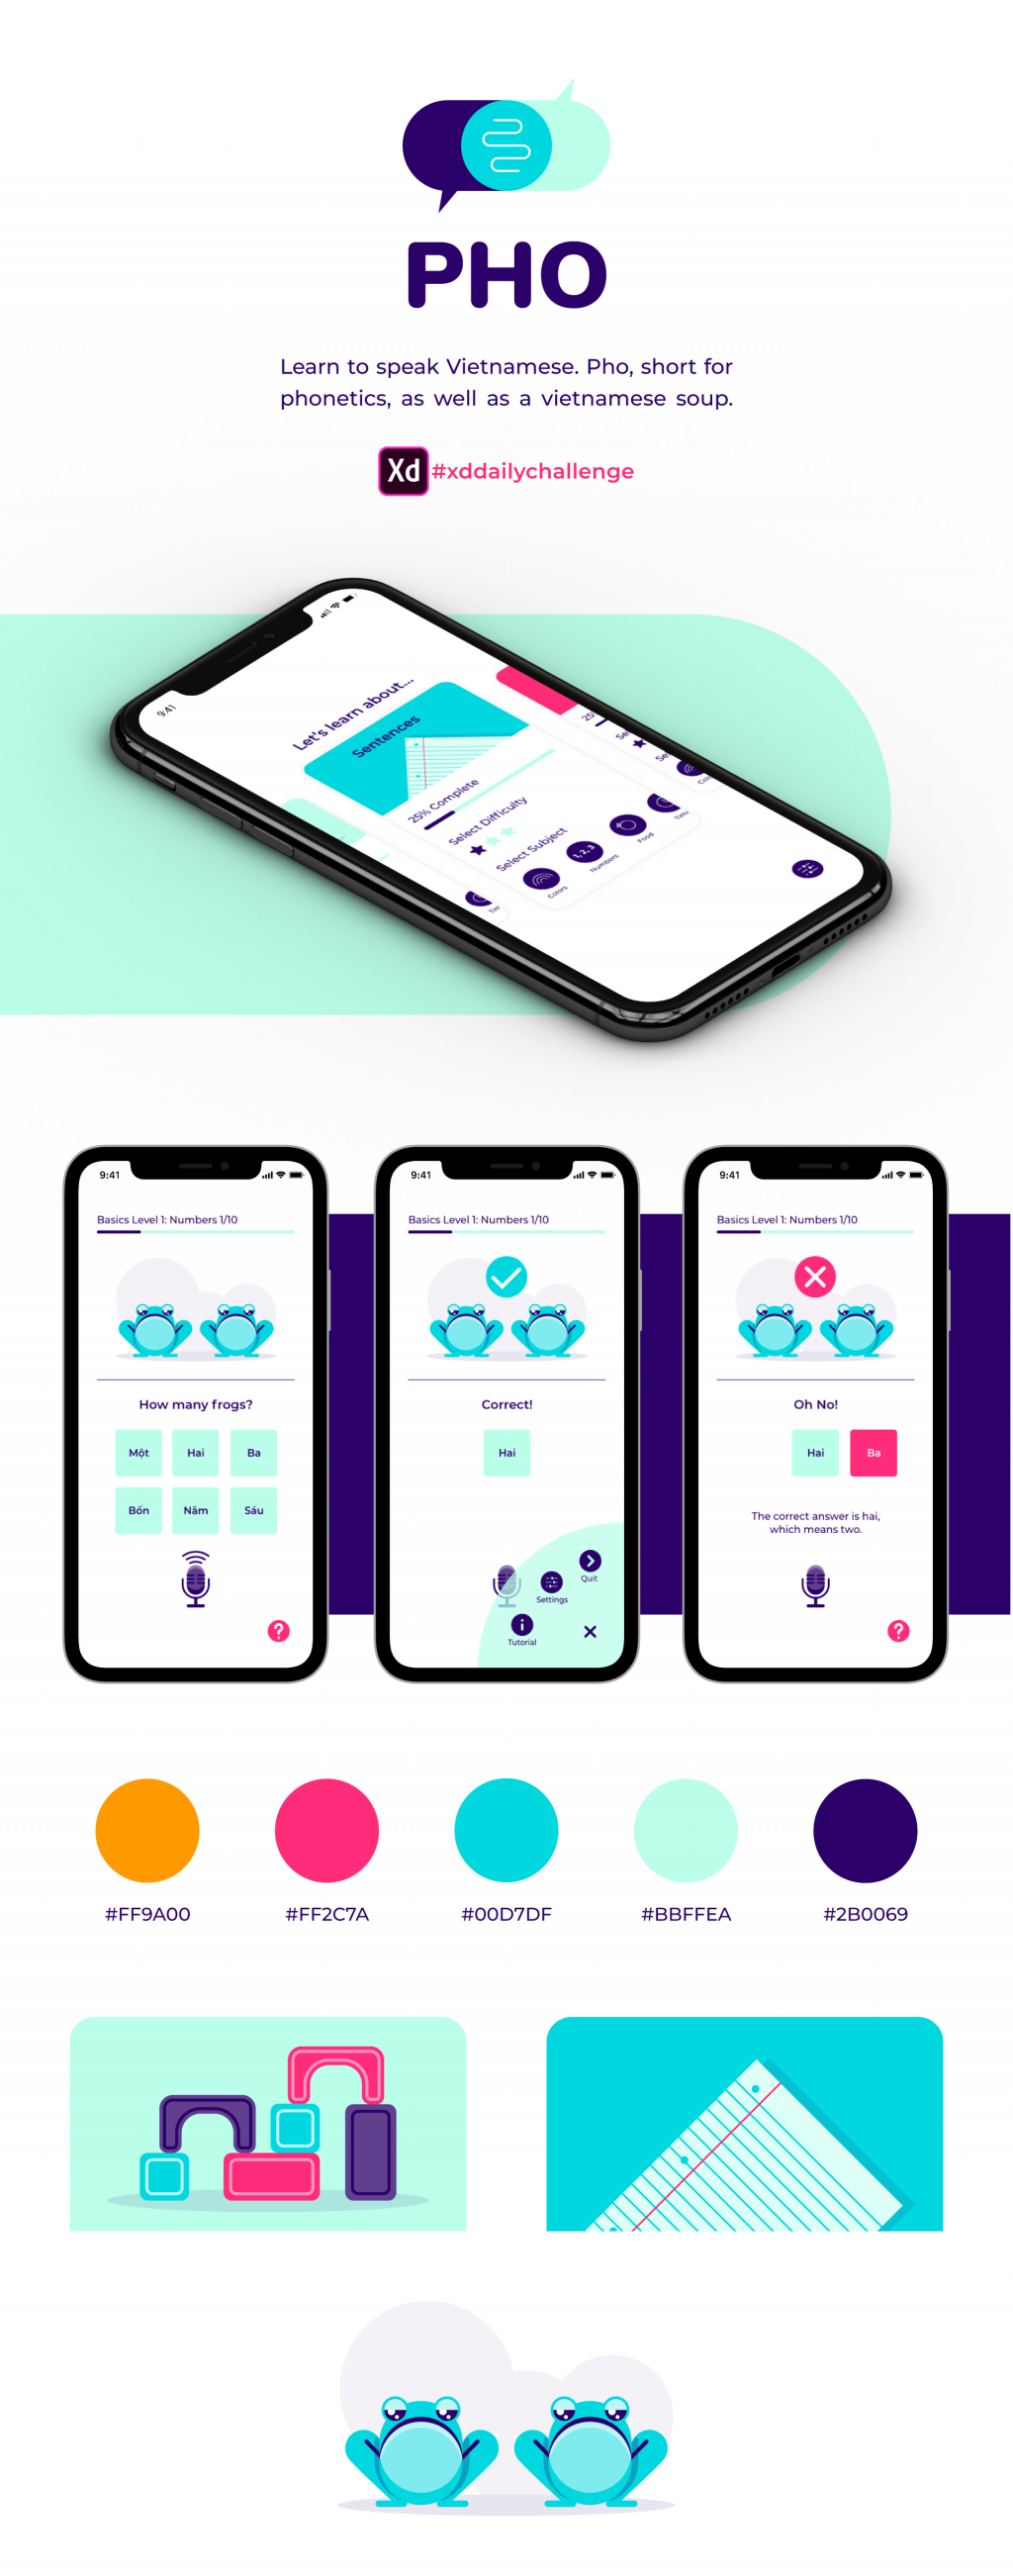 Mockup for a design for a language learning app.